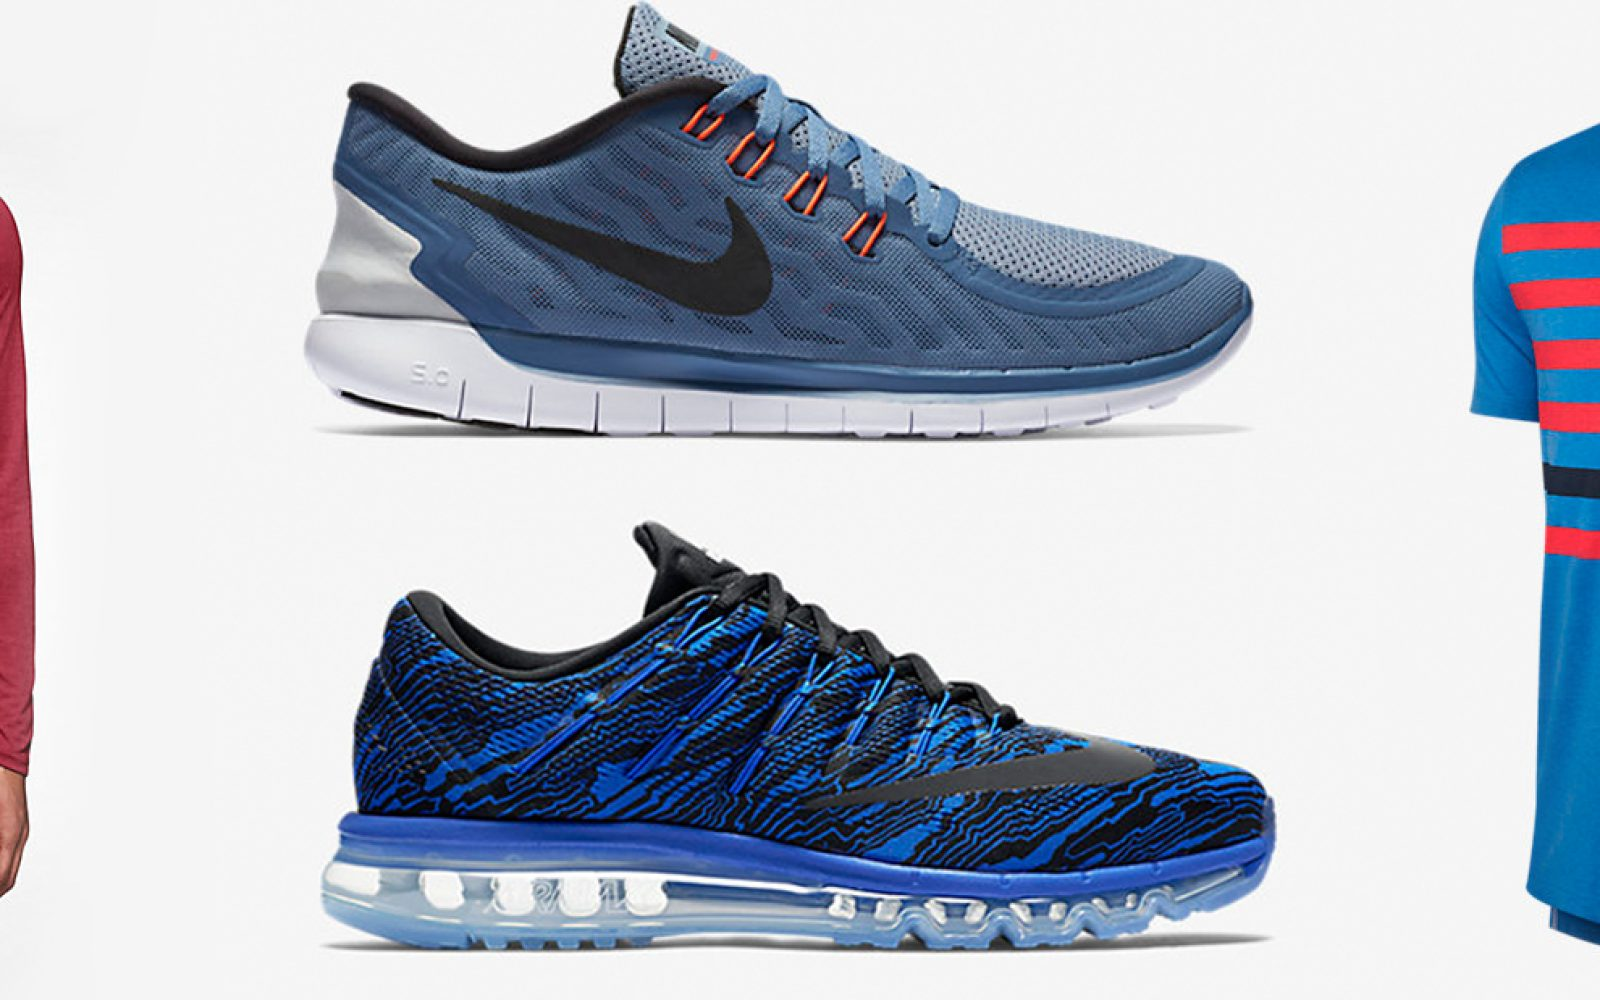 5221e904564 Nike extra 20% off clearance  Free 5.0 Running Shoes (five colors)  64  (Reg.  80)